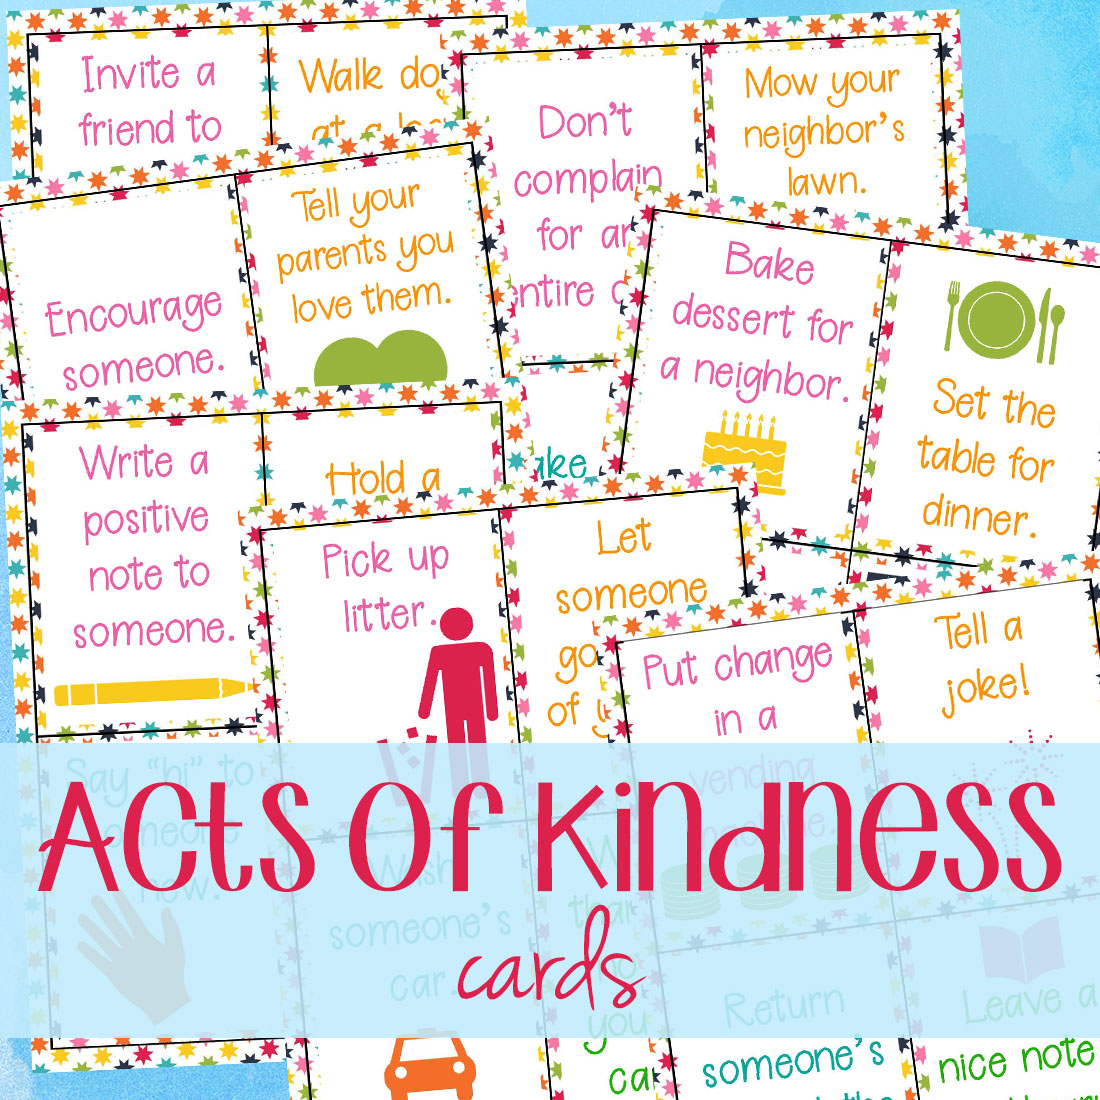 30 Days of Kindness Challenge, Random Acts of Kindness Ideas,The 30 Days of Kindness Challenge inspires you to take time out of each and every day to do something kind for a friend, a neighbor, a stranger, the environment, or your community. Acts of Kindness and Random acts of kindness printable